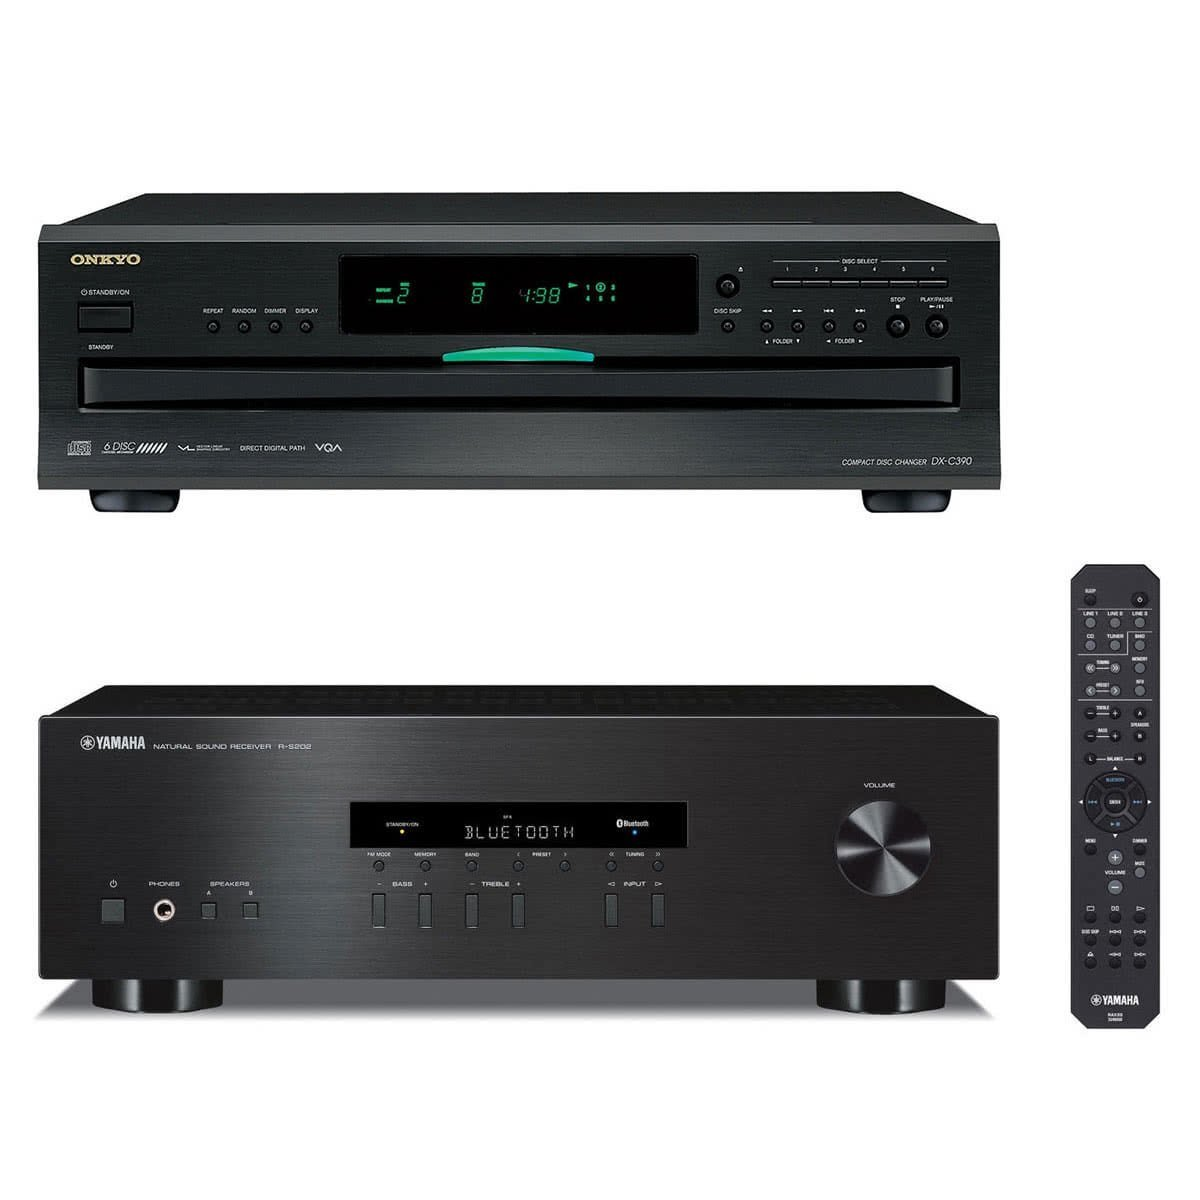 Onkyo DX-C390 CD Changer Receiver with 6-Disc Carousel Changer /& Remote Control